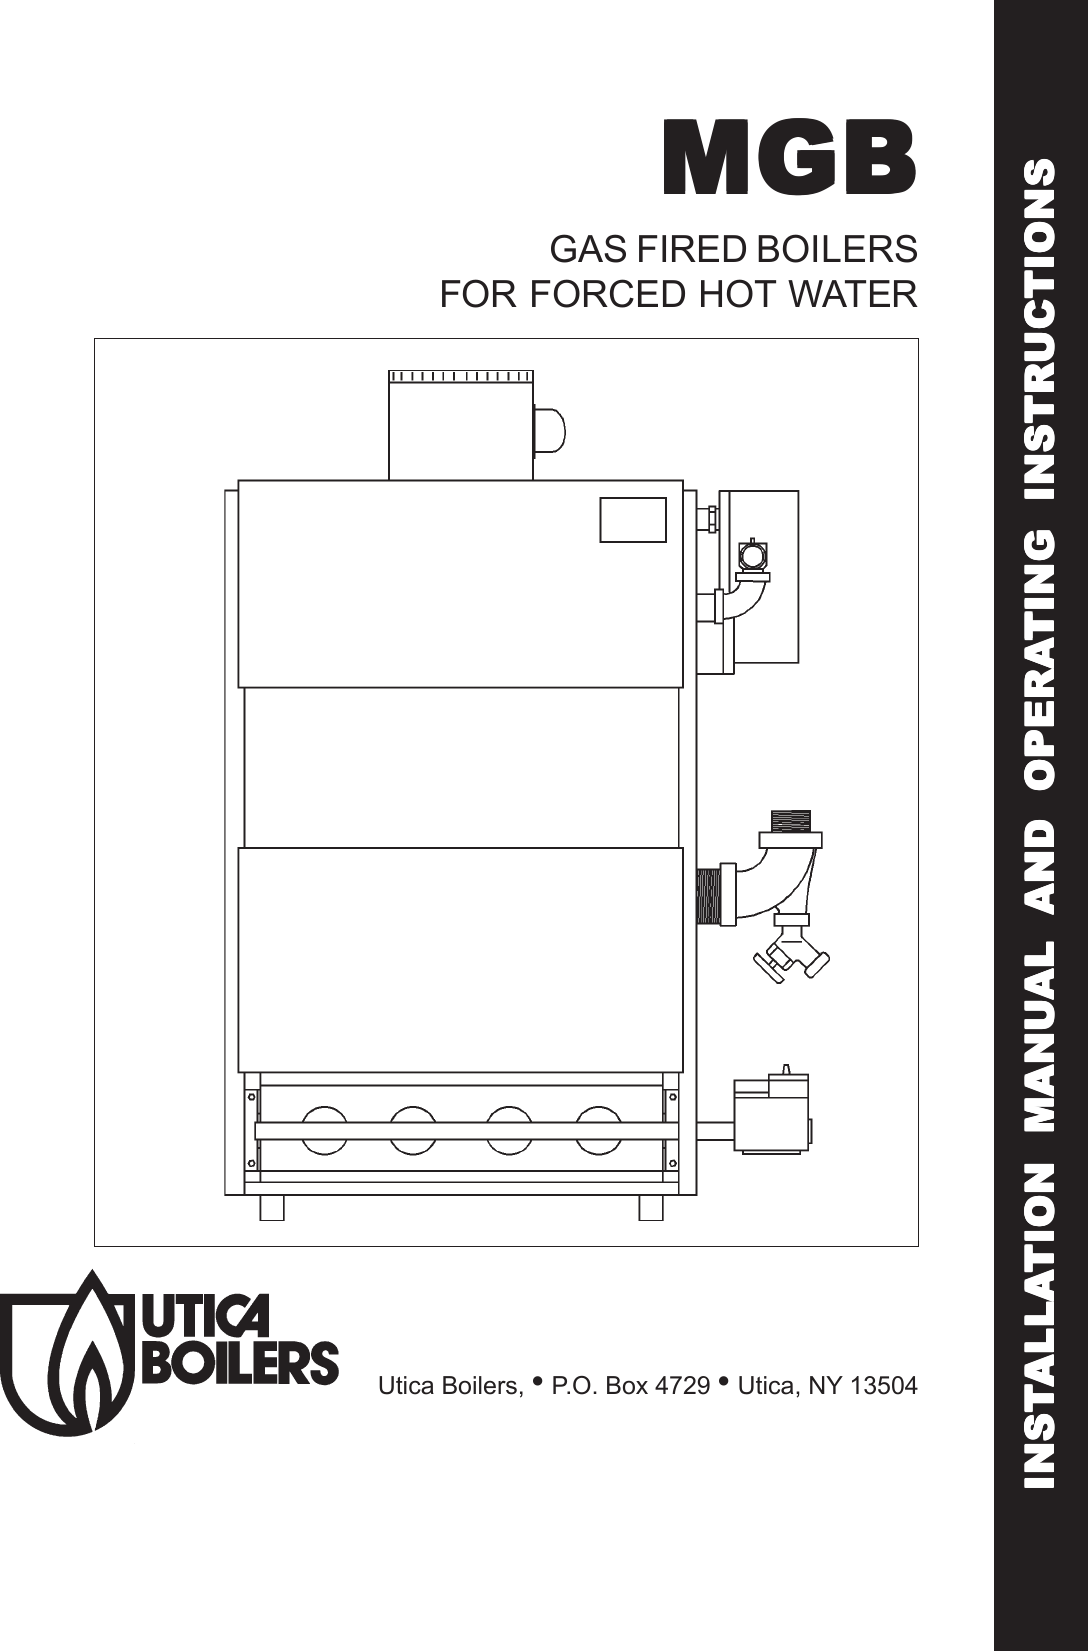 Utica Gas Steam Boiler Wiring Diagram Trusted Diagrams Slant Fin Electrical Galaxy Boilers Fired